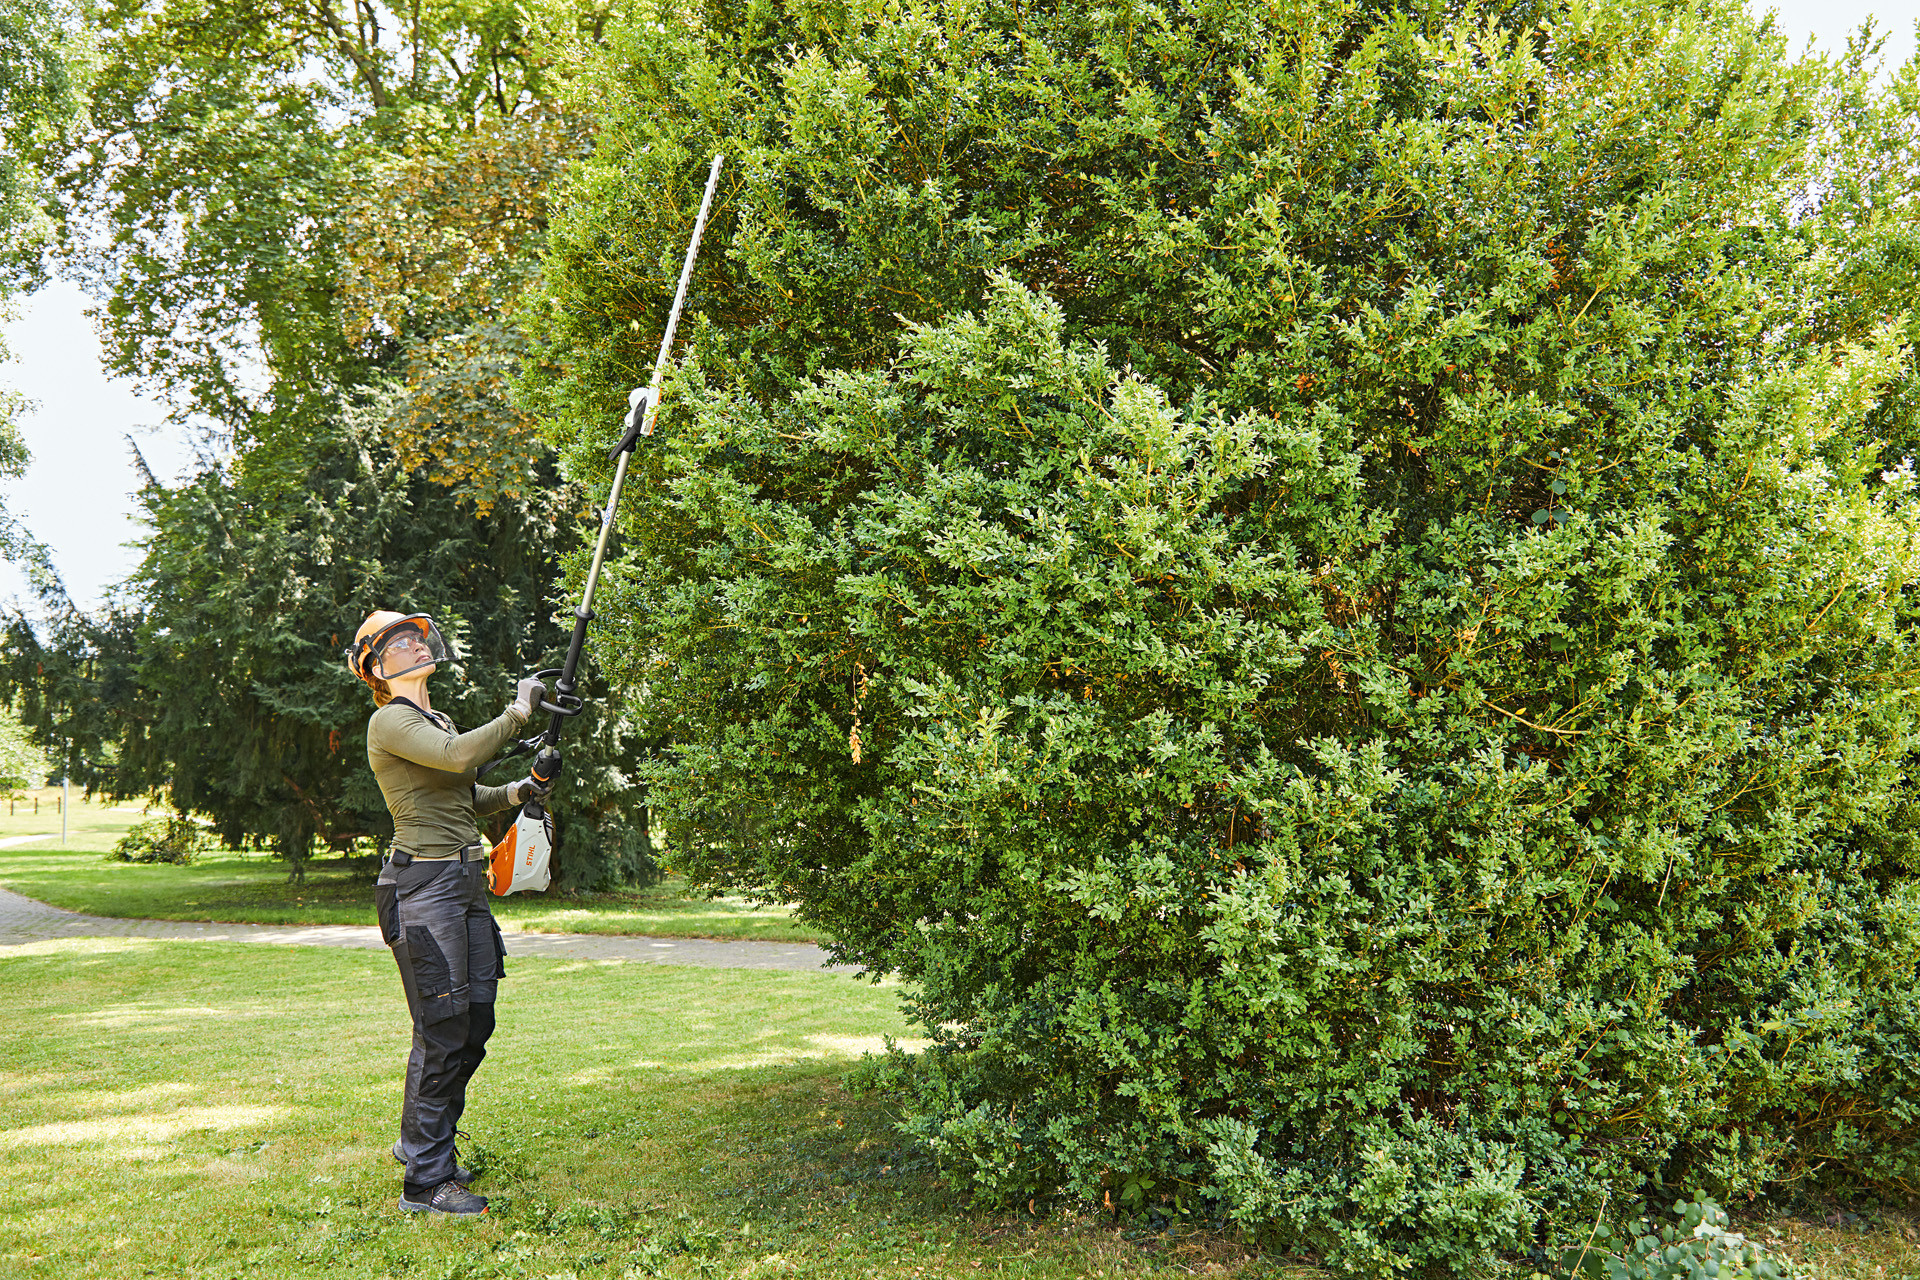 STHIL launches new long reach hedge trimmer